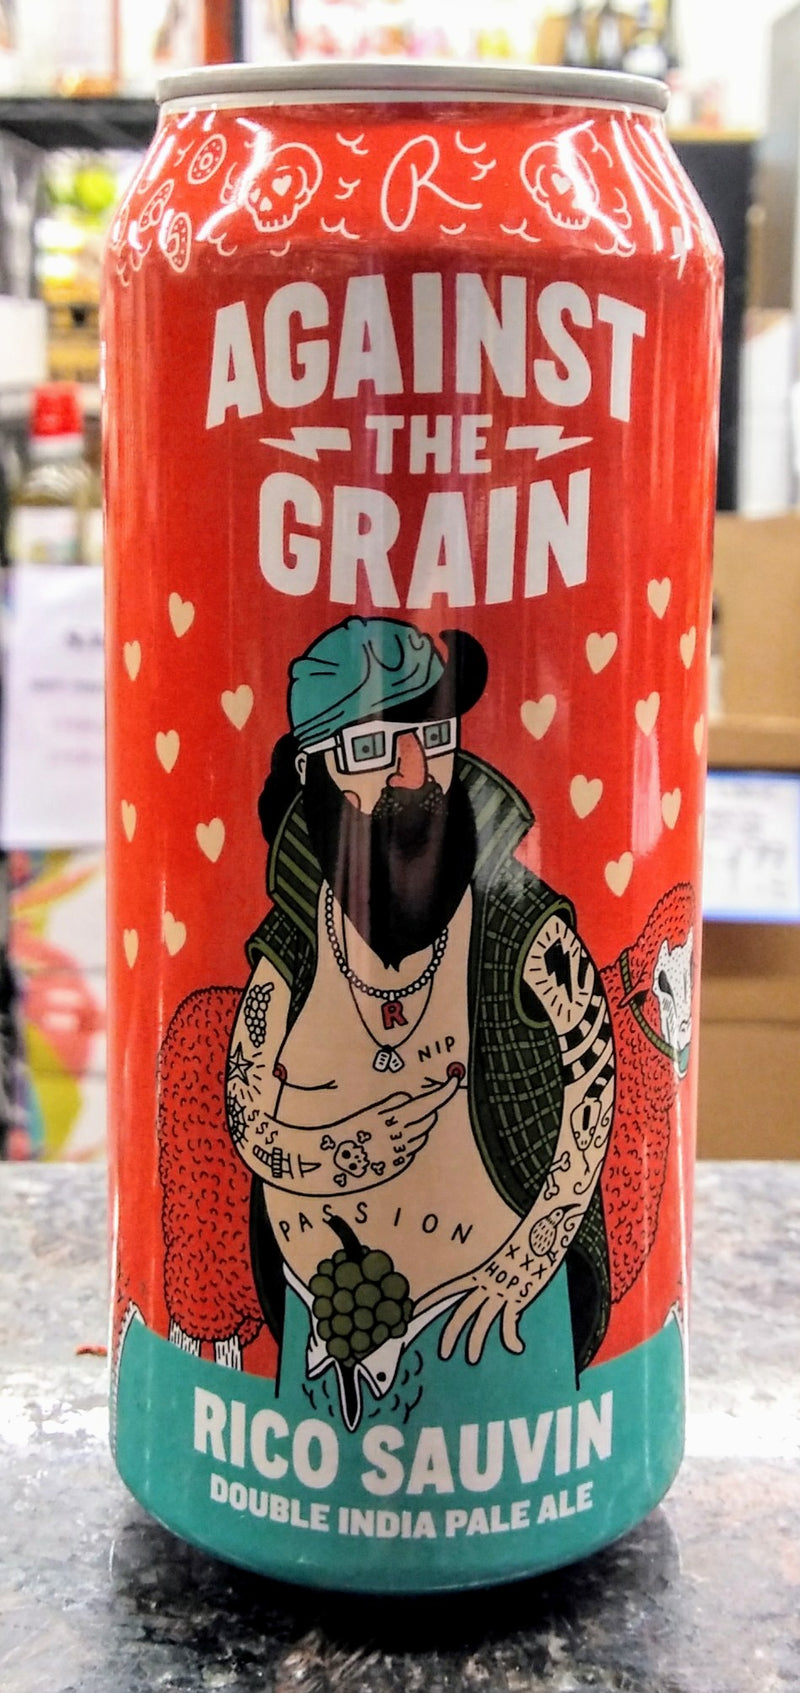 AGAINST THE GRAIN BREWERY RICO SAUVIN DOUBLE IPA 16oz can